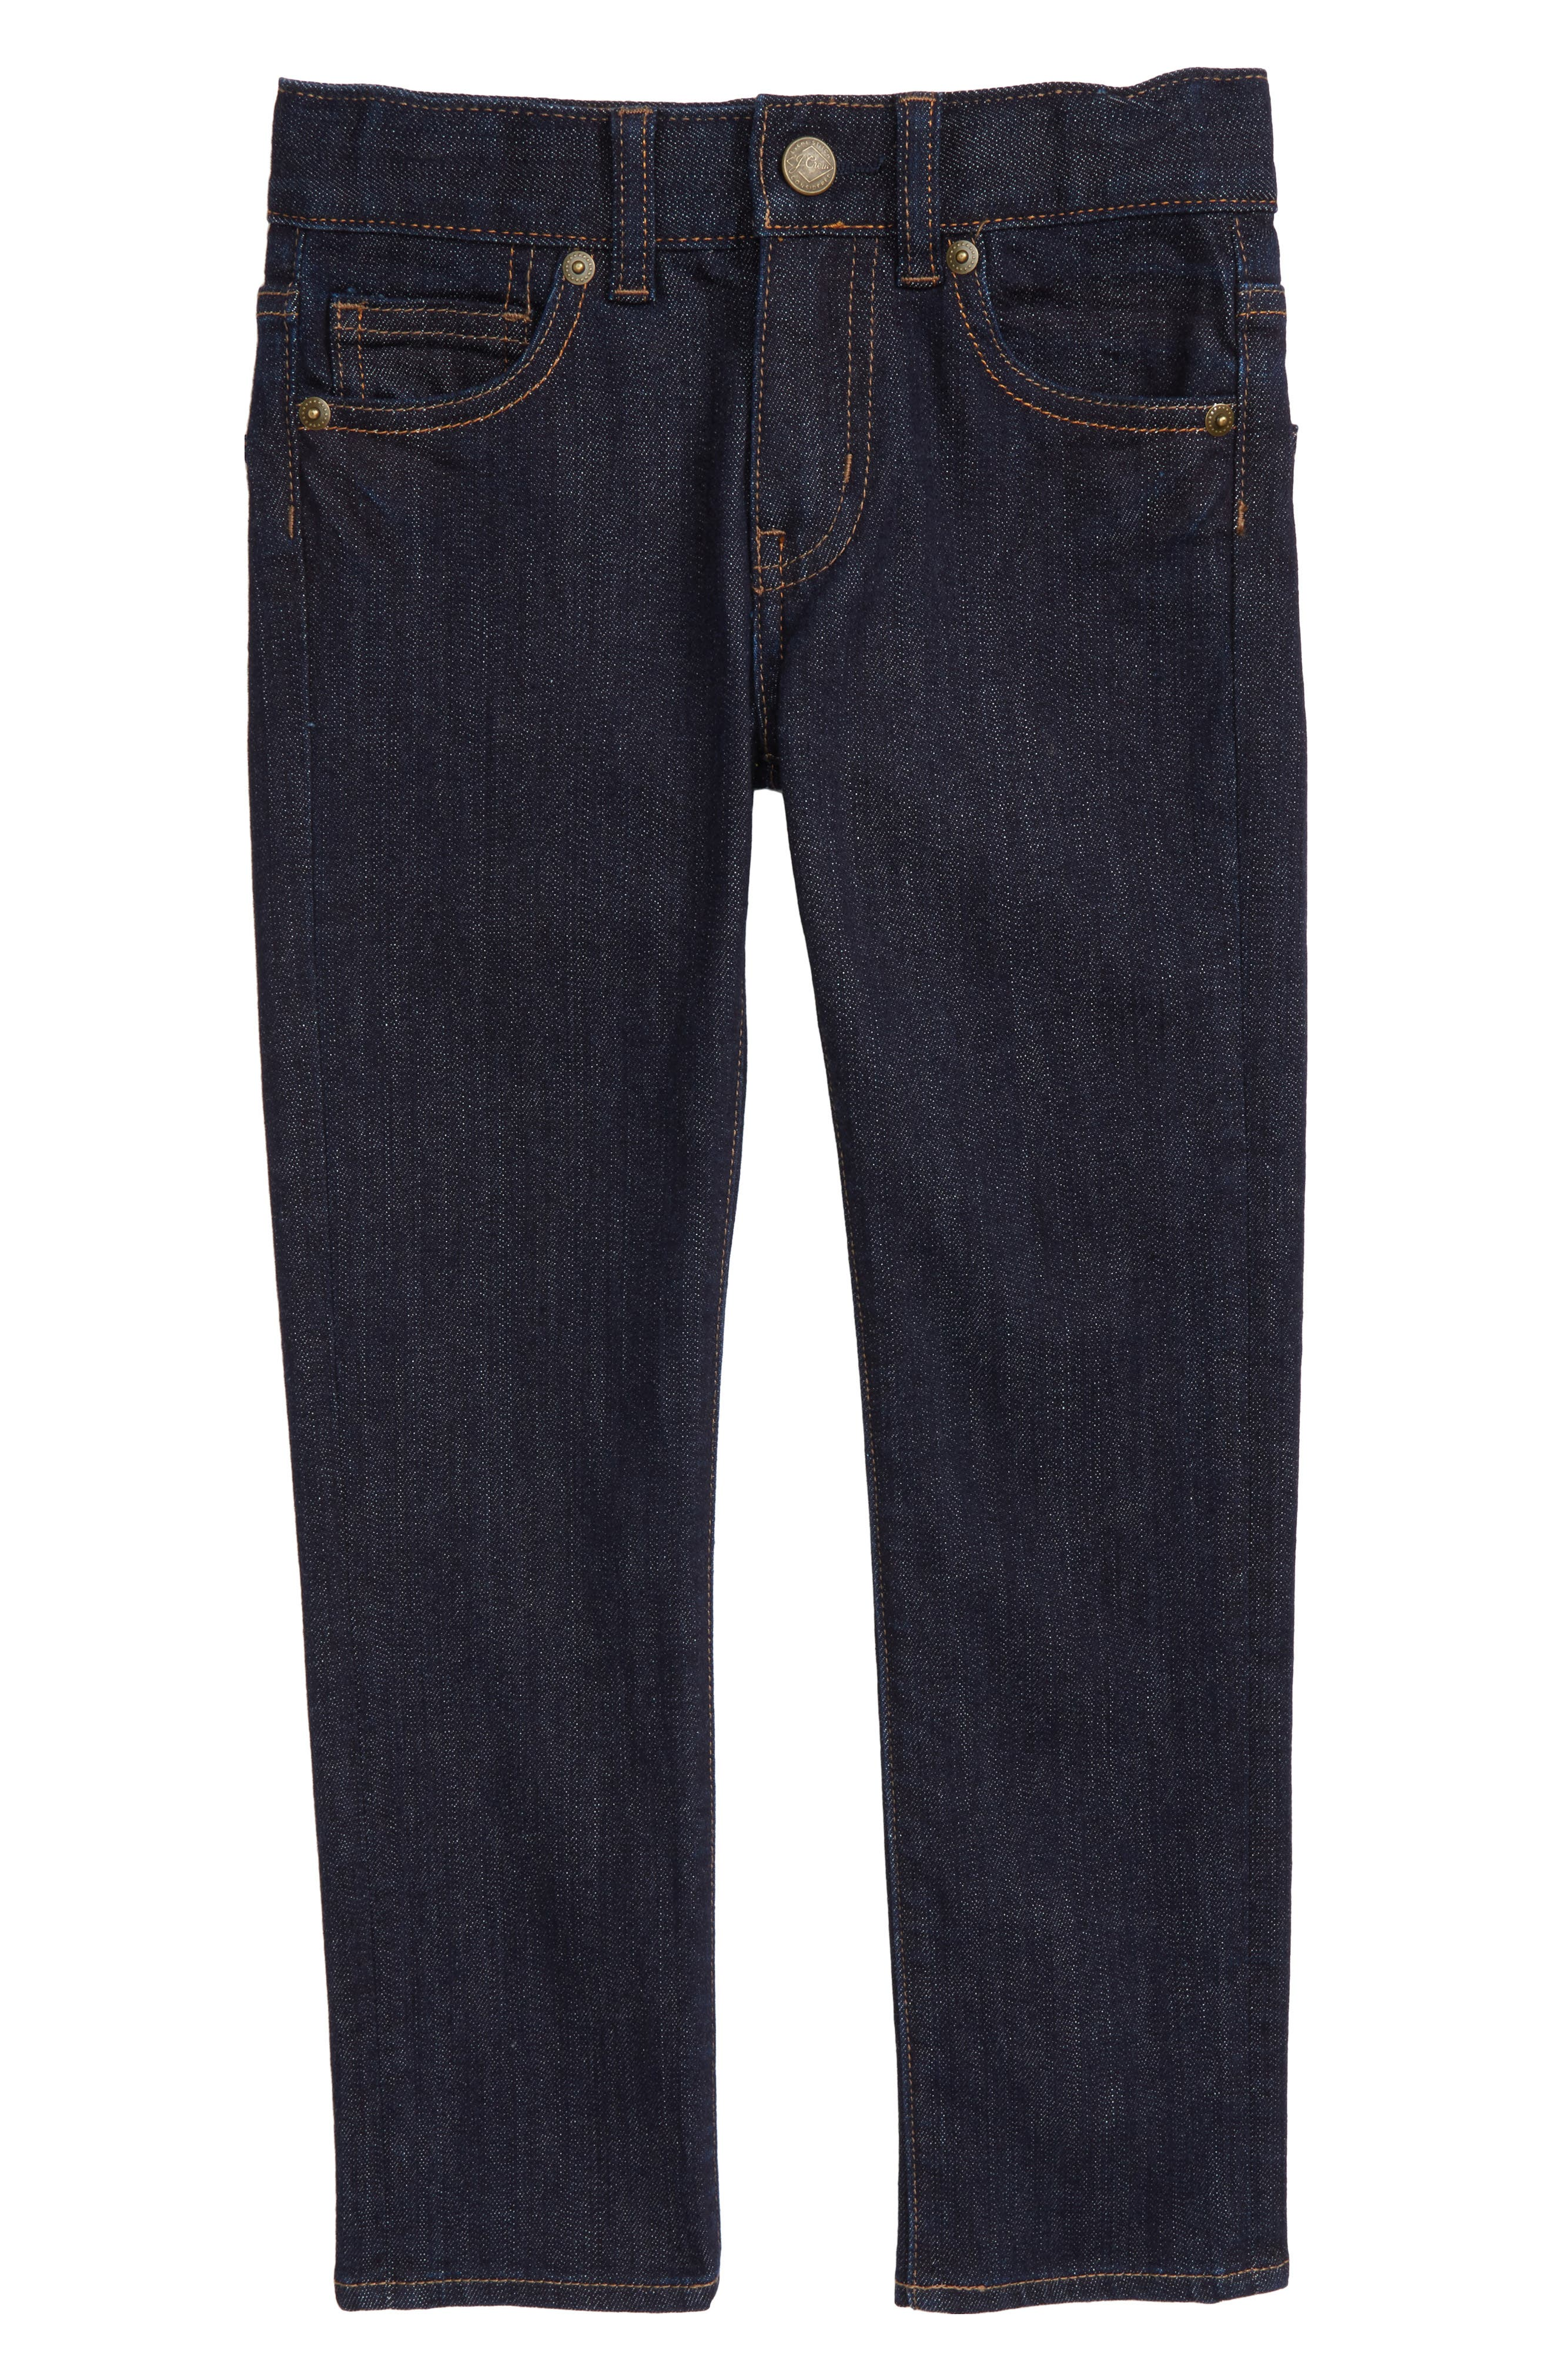 crewcuts by J.Crew Slim Fit Jeans (Toddler Boys, Little Boys & Big Boys)